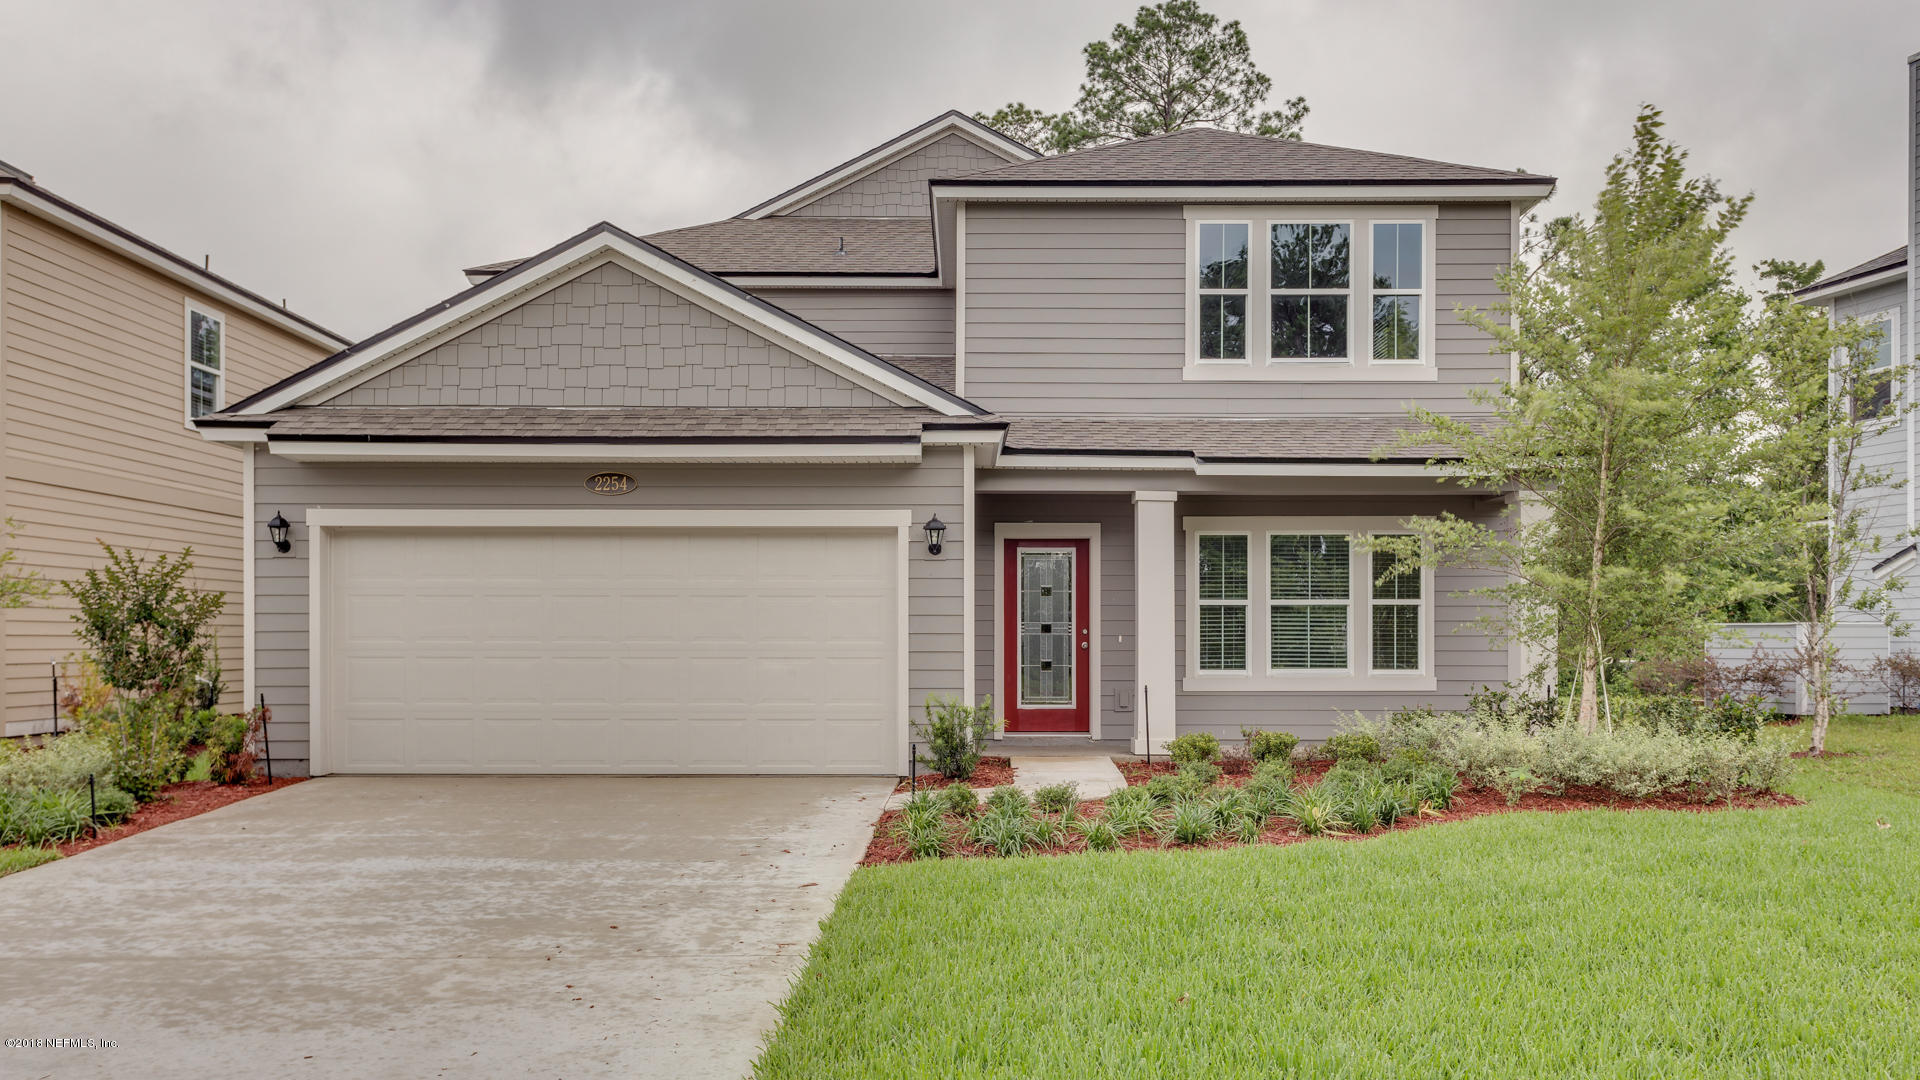 2254 EAGLE PERCH, FLEMING ISLAND, FLORIDA 32003, 4 Bedrooms Bedrooms, ,2 BathroomsBathrooms,Residential - single family,For sale,EAGLE PERCH,902006